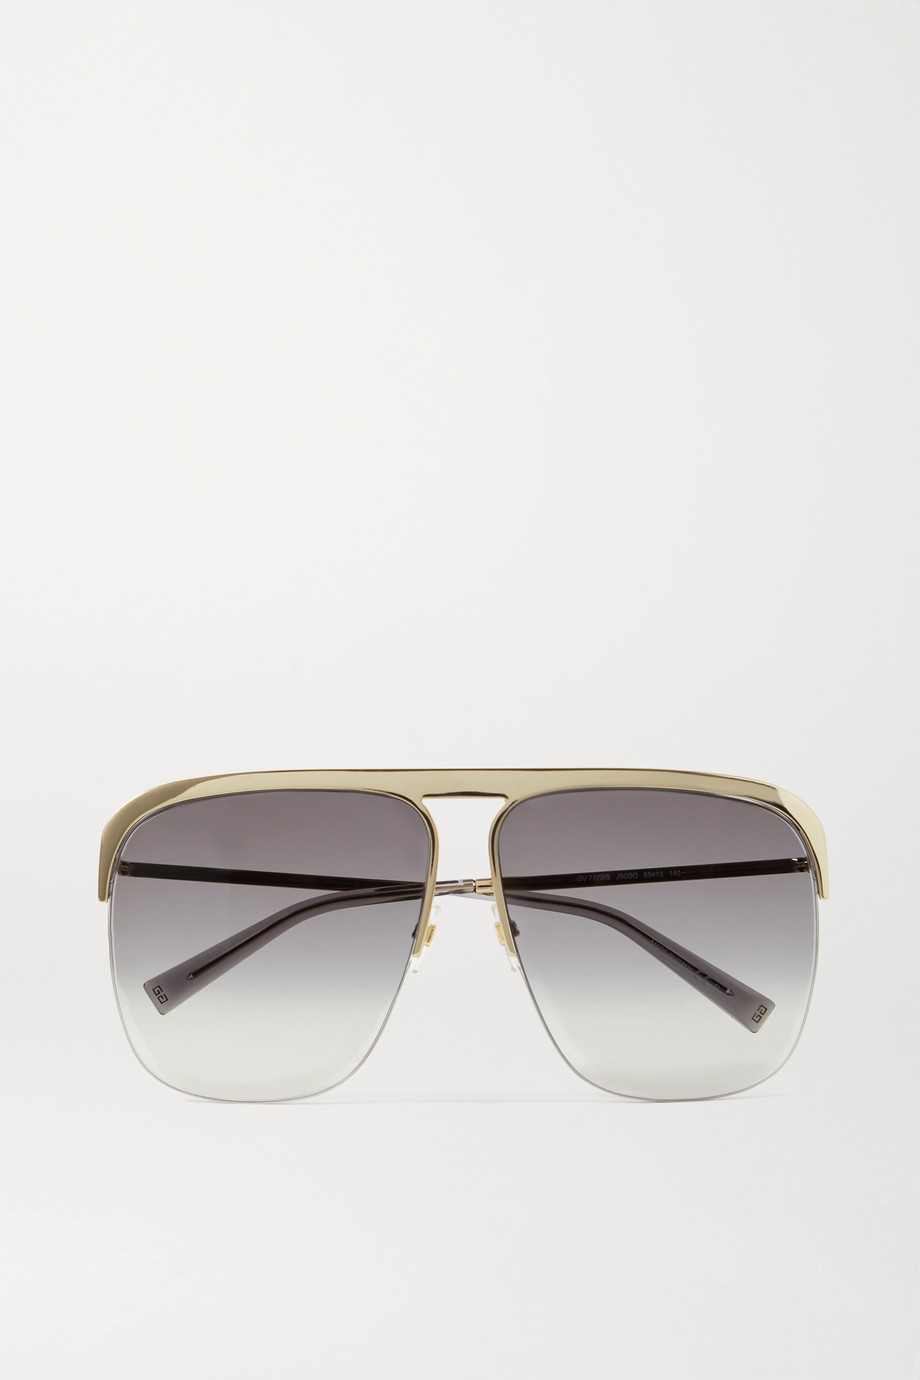 Givenchy GV oversized D-frame gold-tone sunglasses